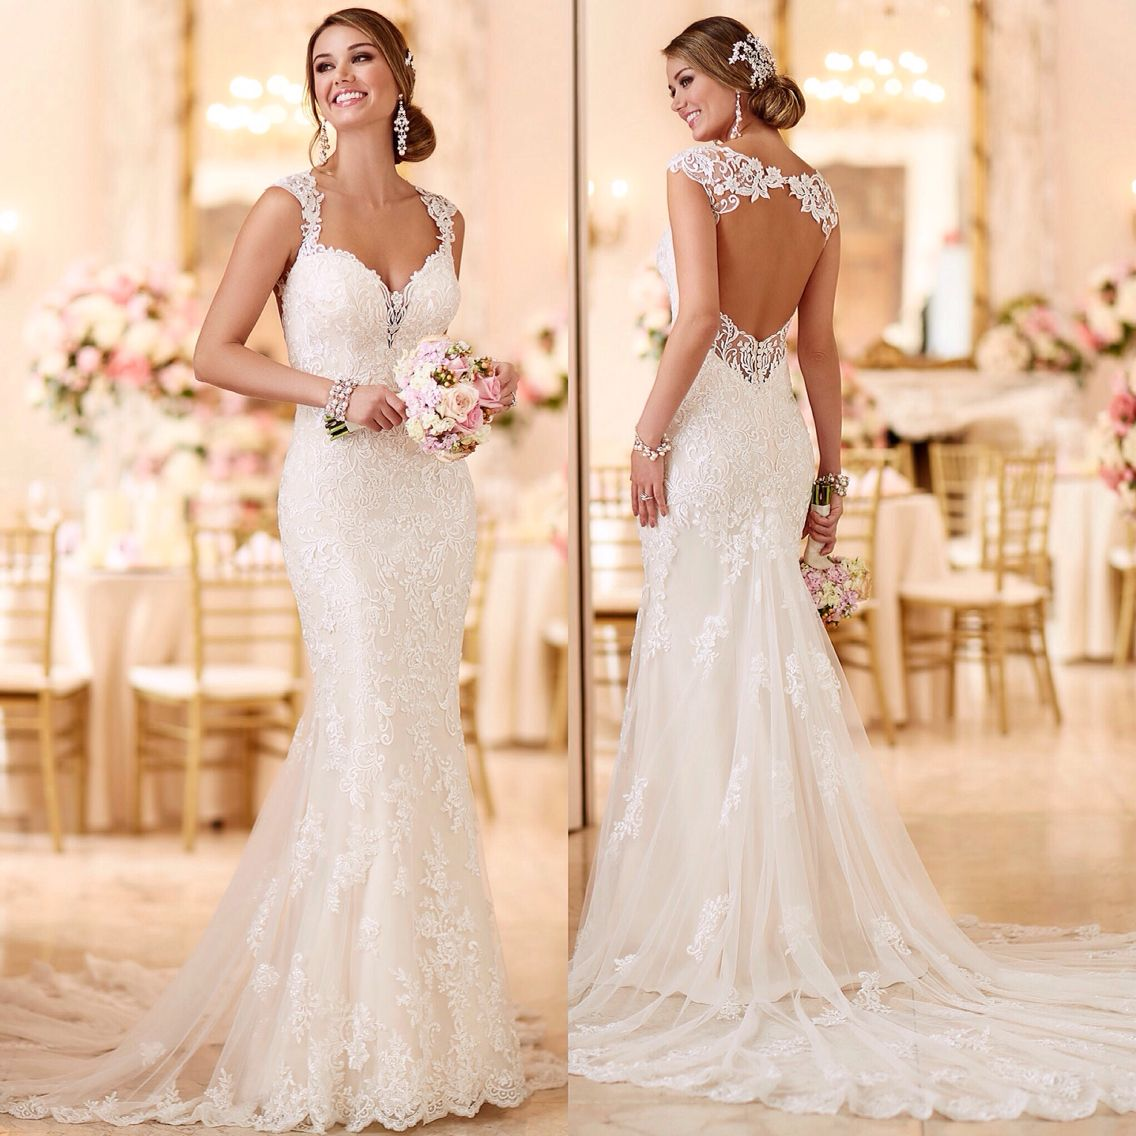 Cute  Stella York lace fitted wedding dress with key hole back backless straps long train